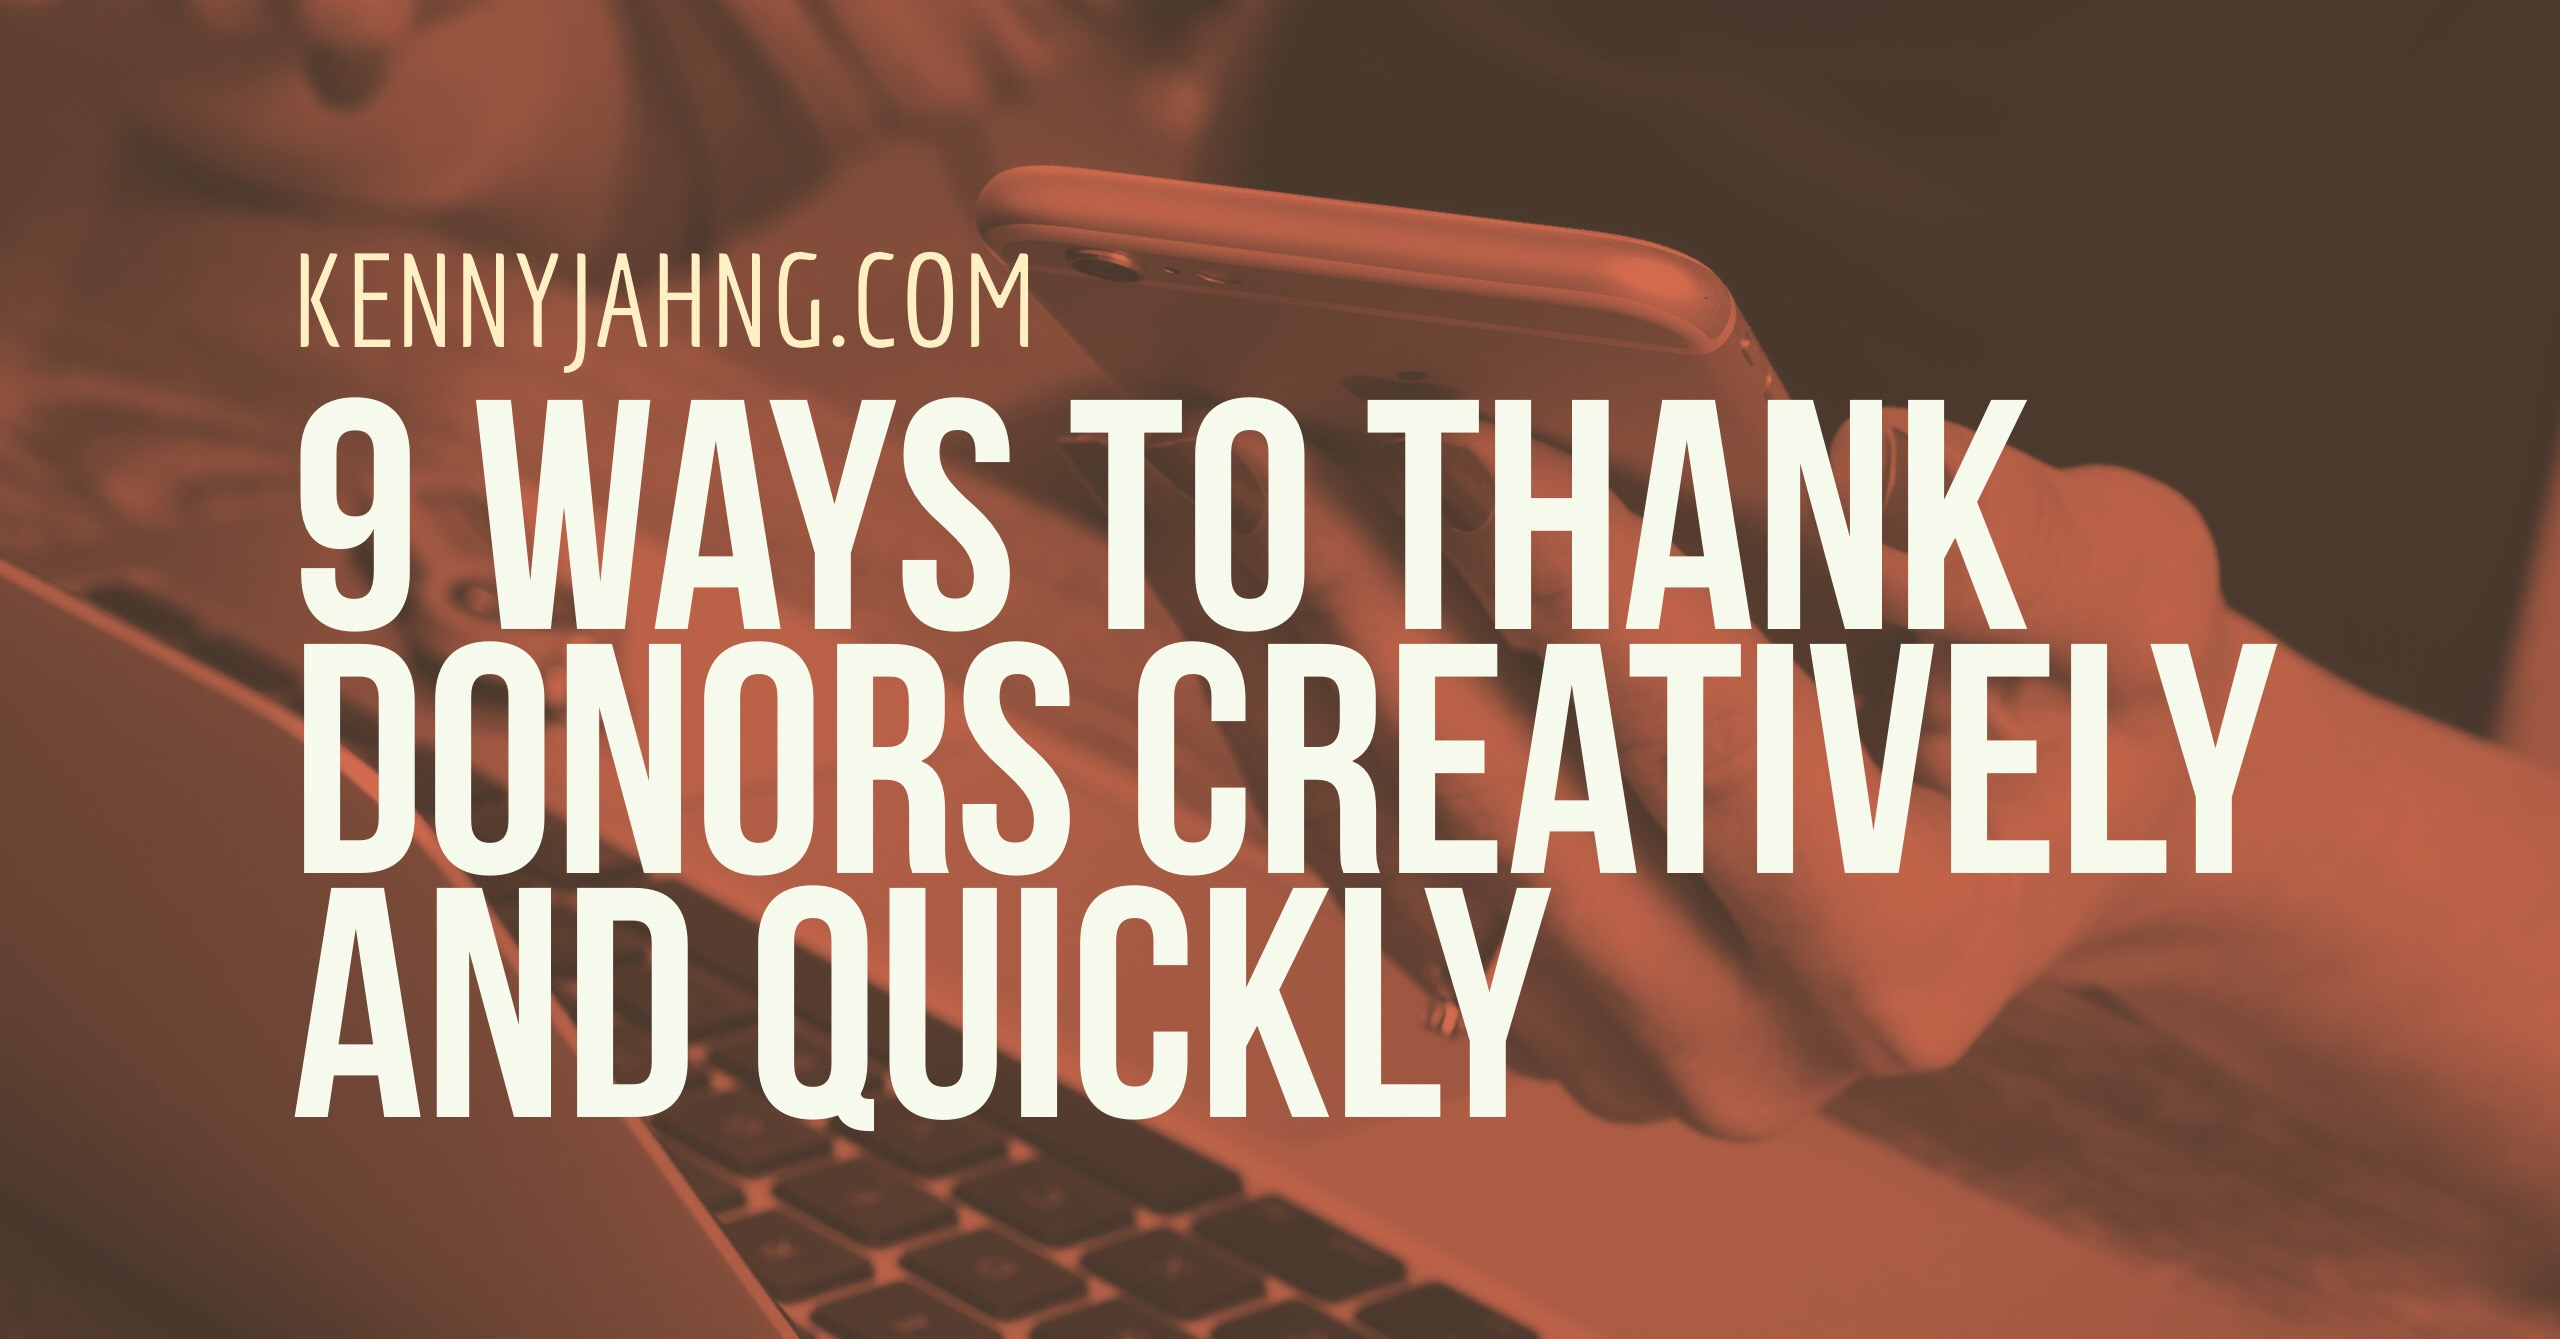 9 ways to thank donors